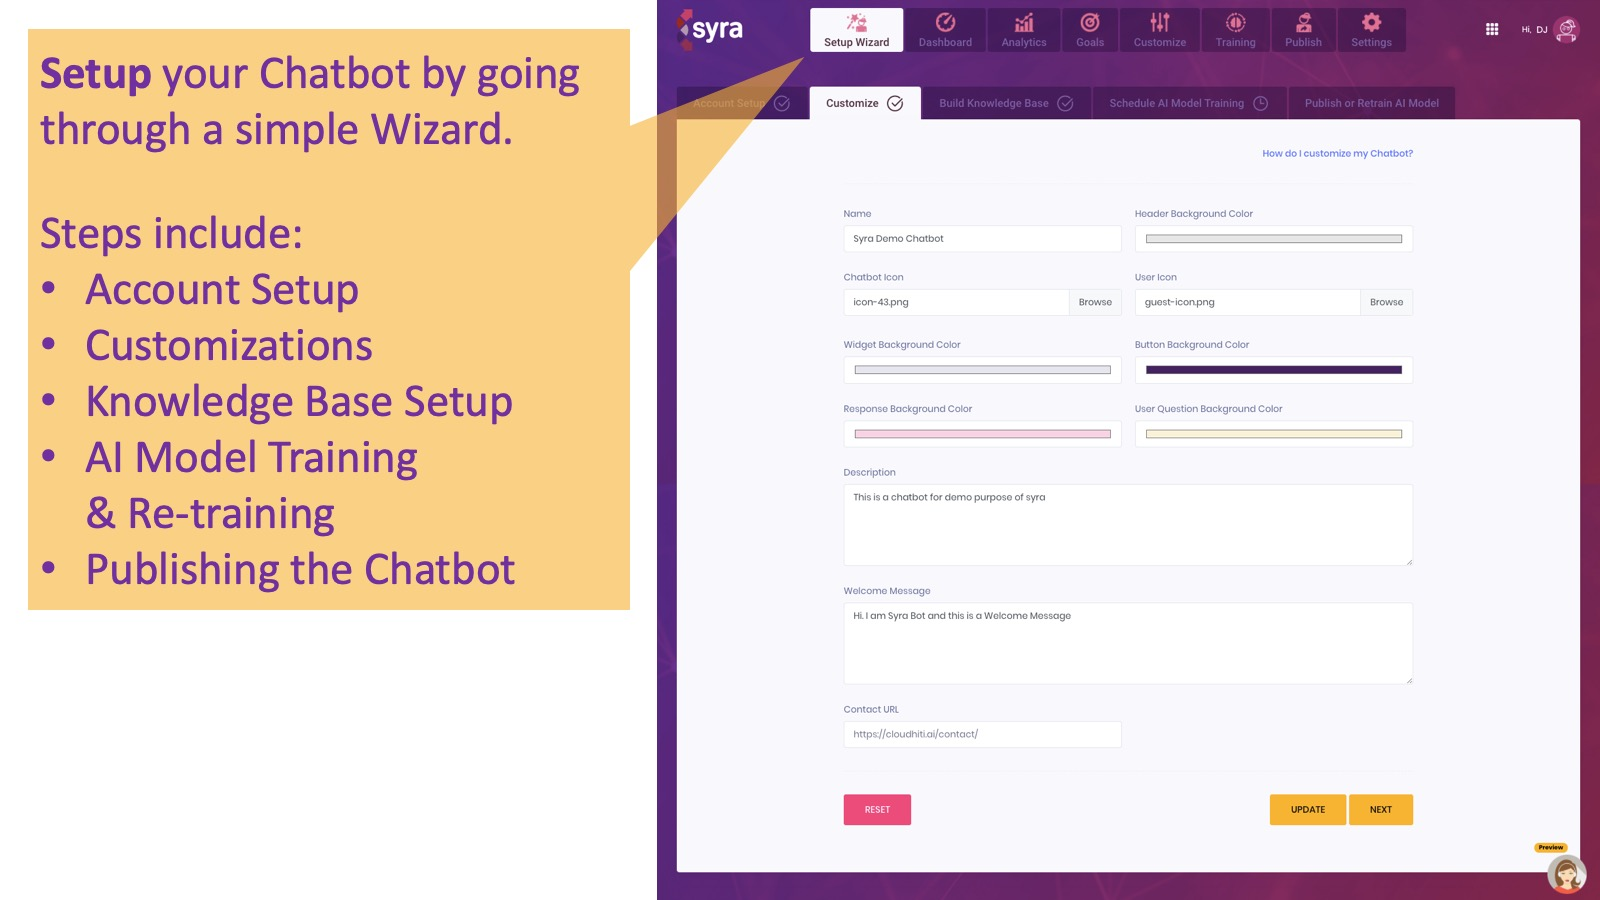 Setup your Chatbot by going through a simple Wizard